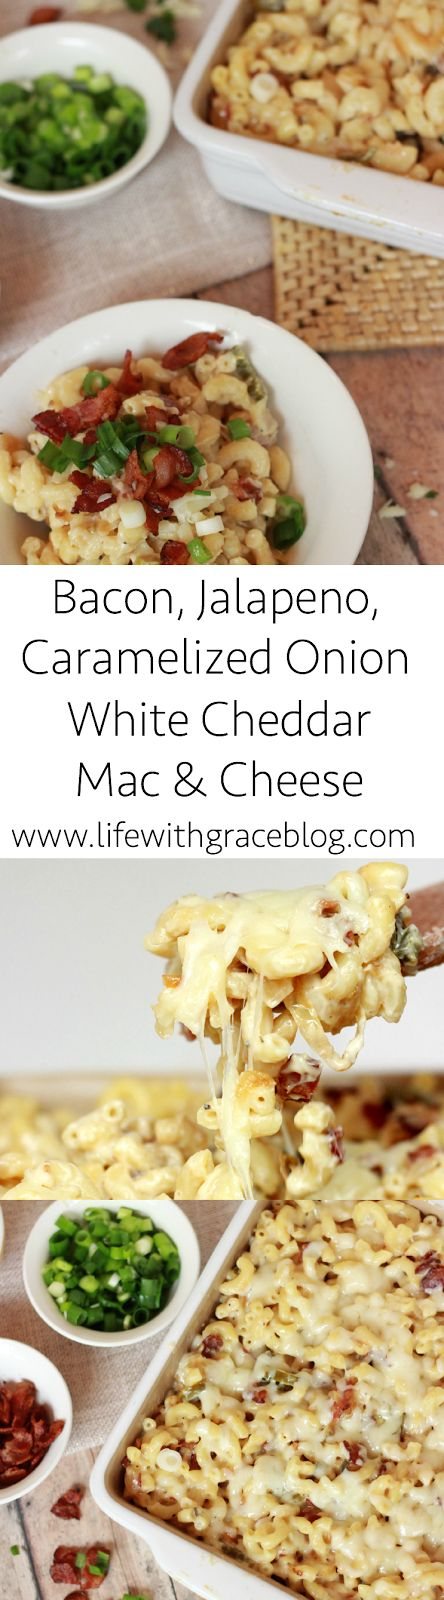 Bacon, Jalapeno & Caramelized onion white cheddar mac & cheese  {www.lifewithgraceblog.com}